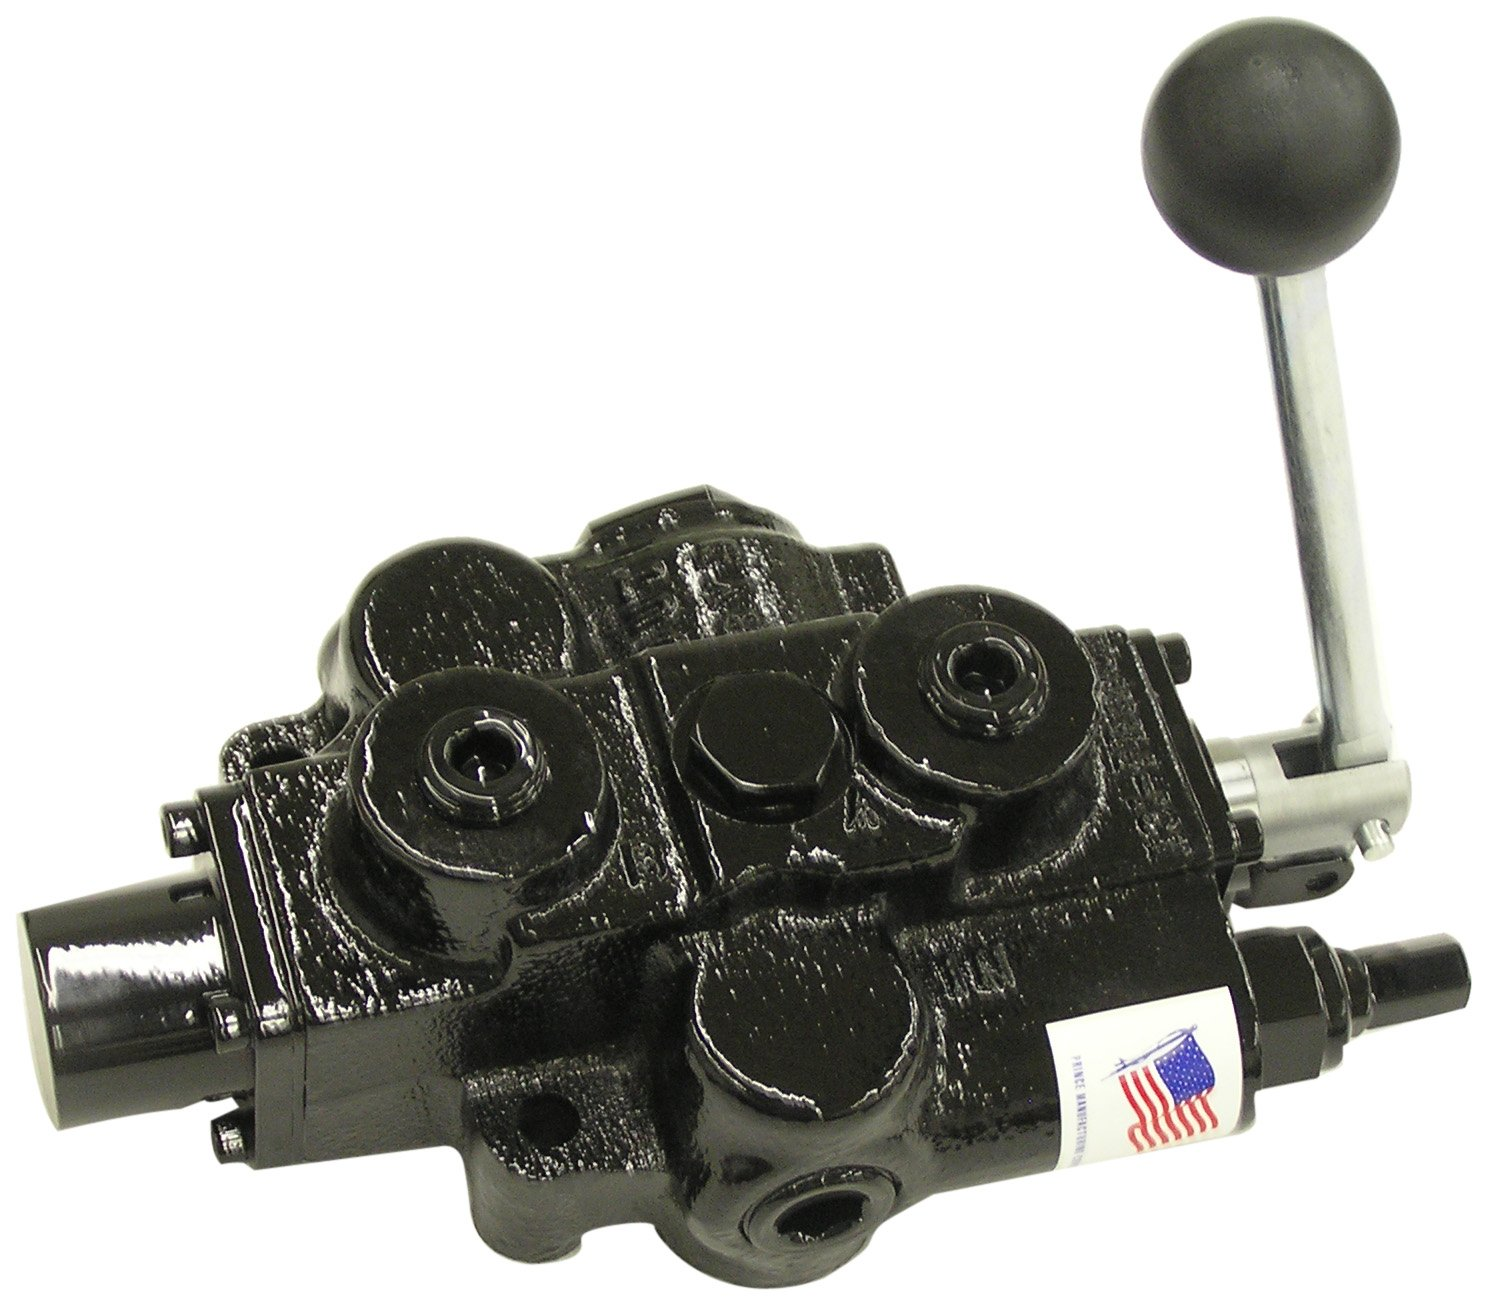 Prince RD512AA5A4B1 Directional Control Valve, Single Spool, 3 Ways, 3 Positions, Open Center, Spring Center To Neutral, Cast Iron, 3000 psi, Lever Handle, 30 gpm, In/Out: 3/4'' NPTF, Work 1/2'' NPTF